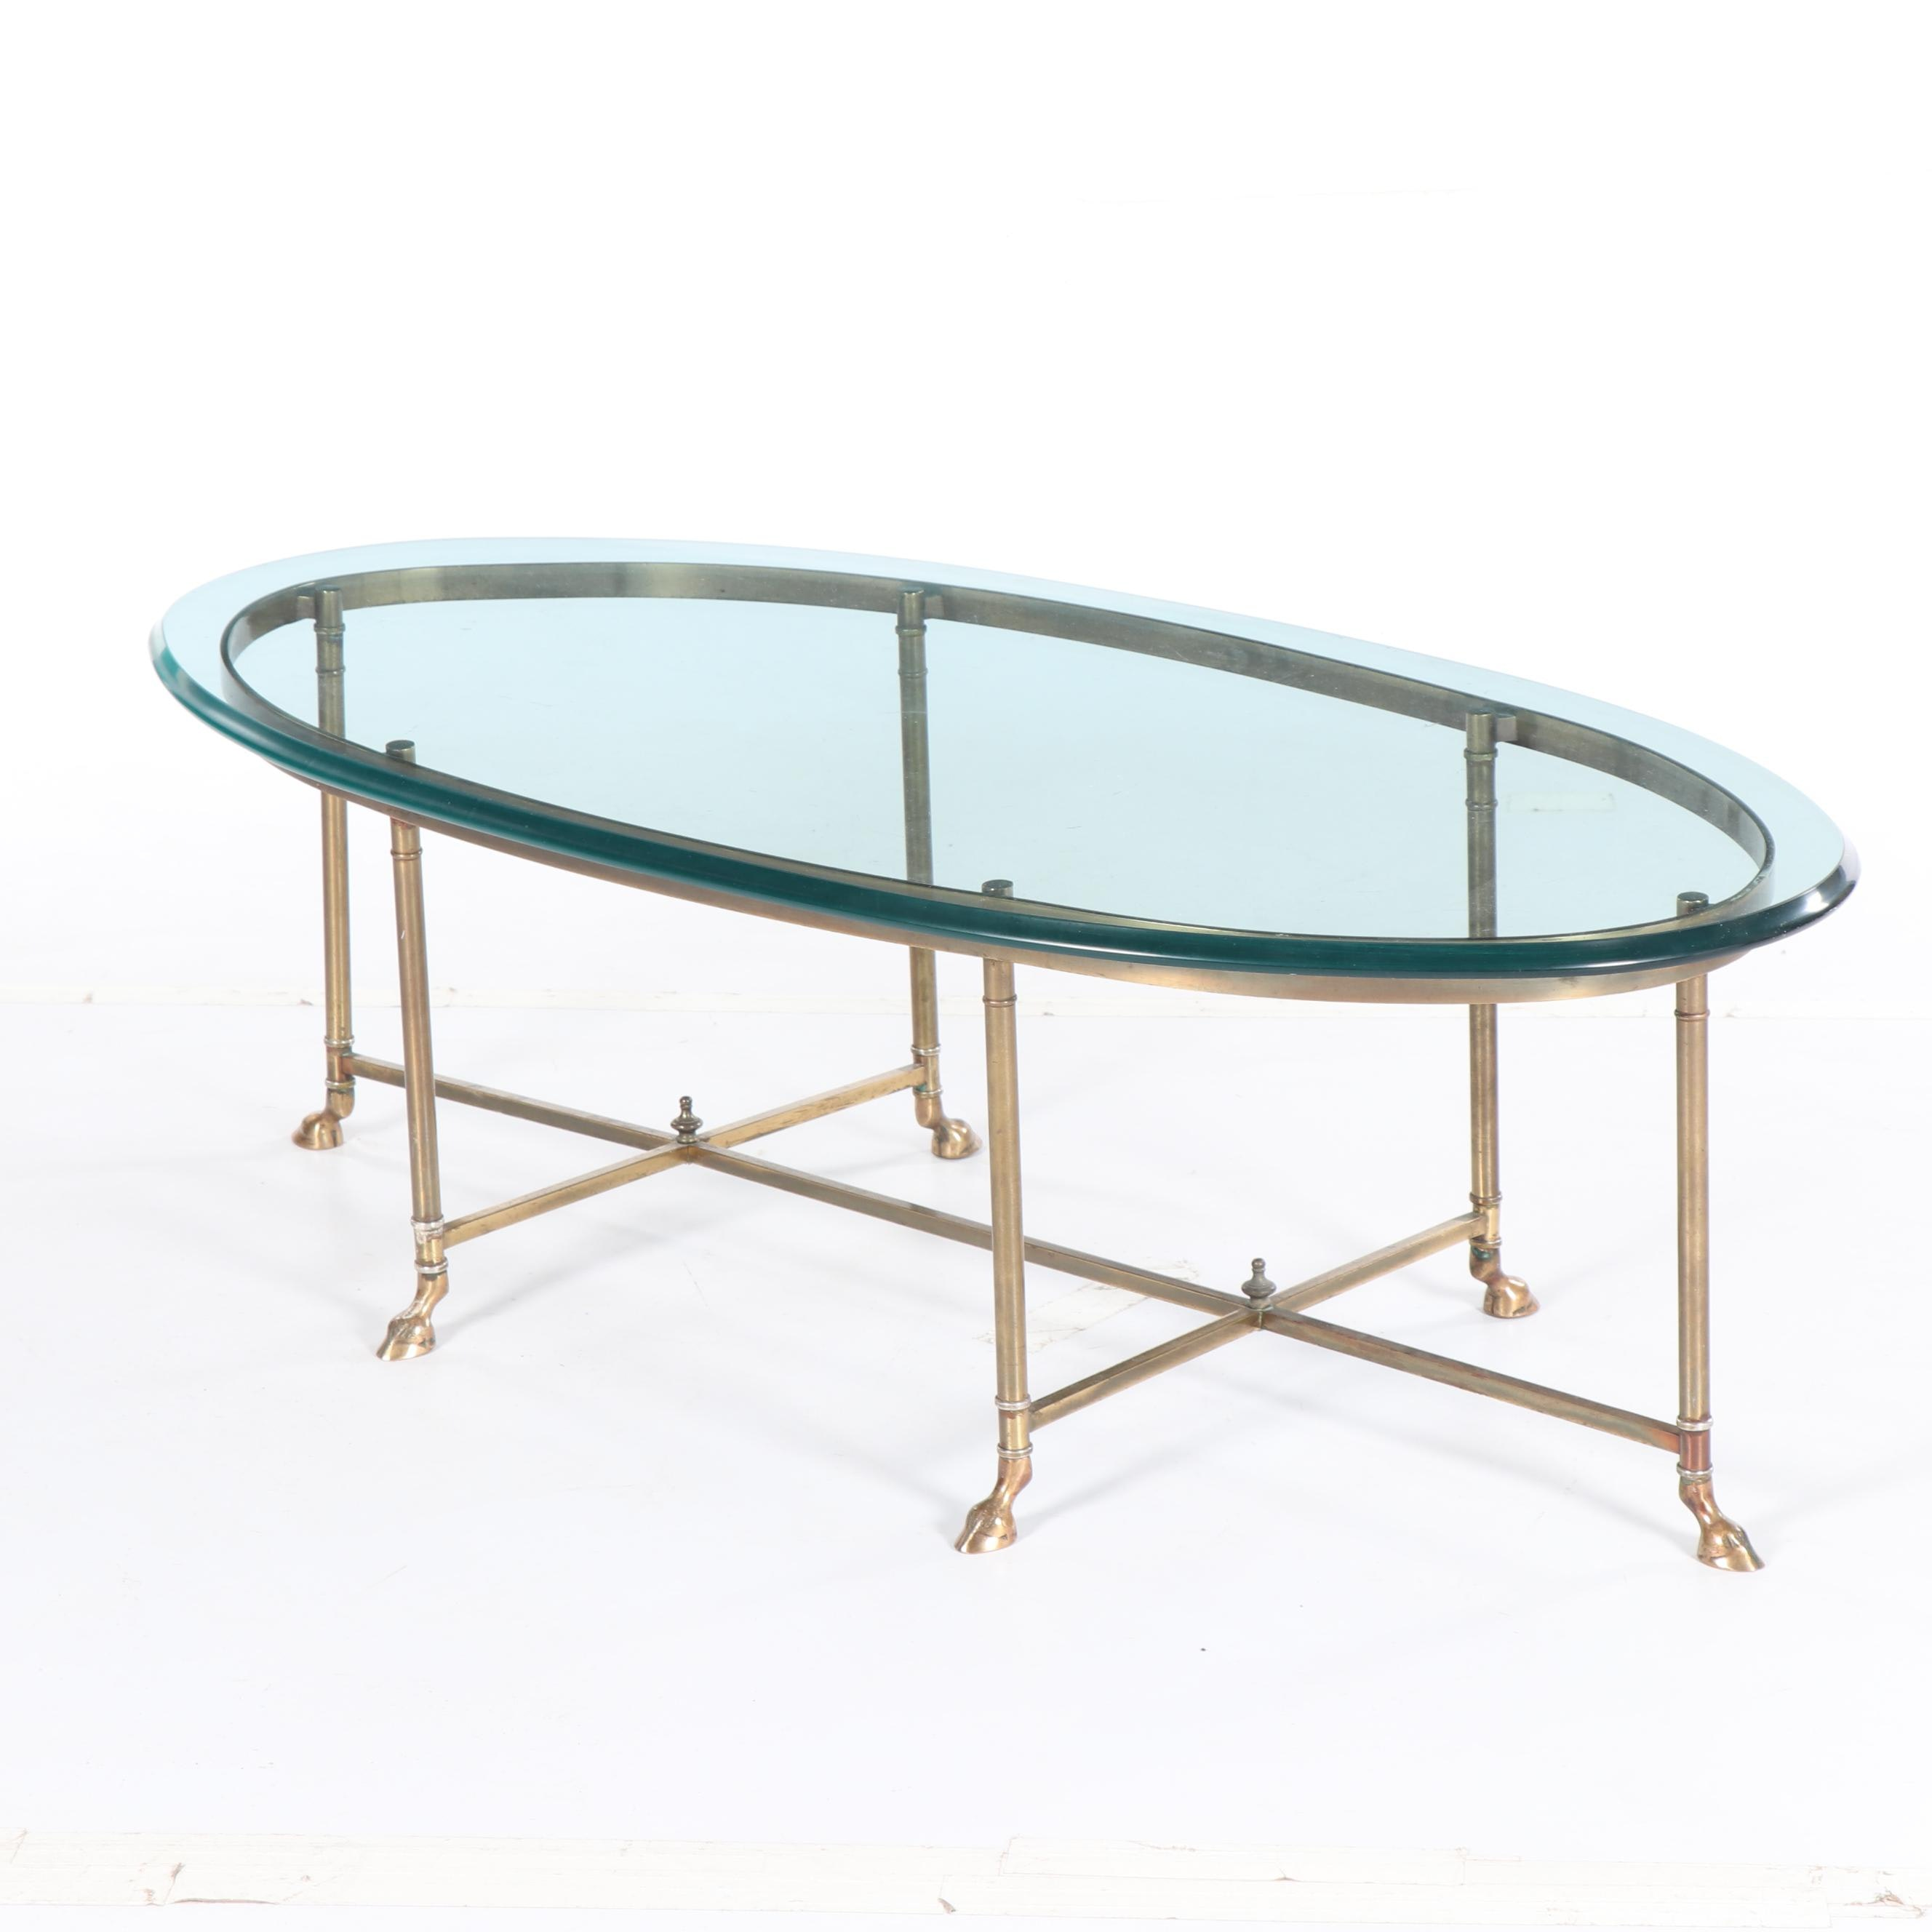 Hollywood Regency Style Brass and Glass Oval Coffee Table, Mid 20th Century